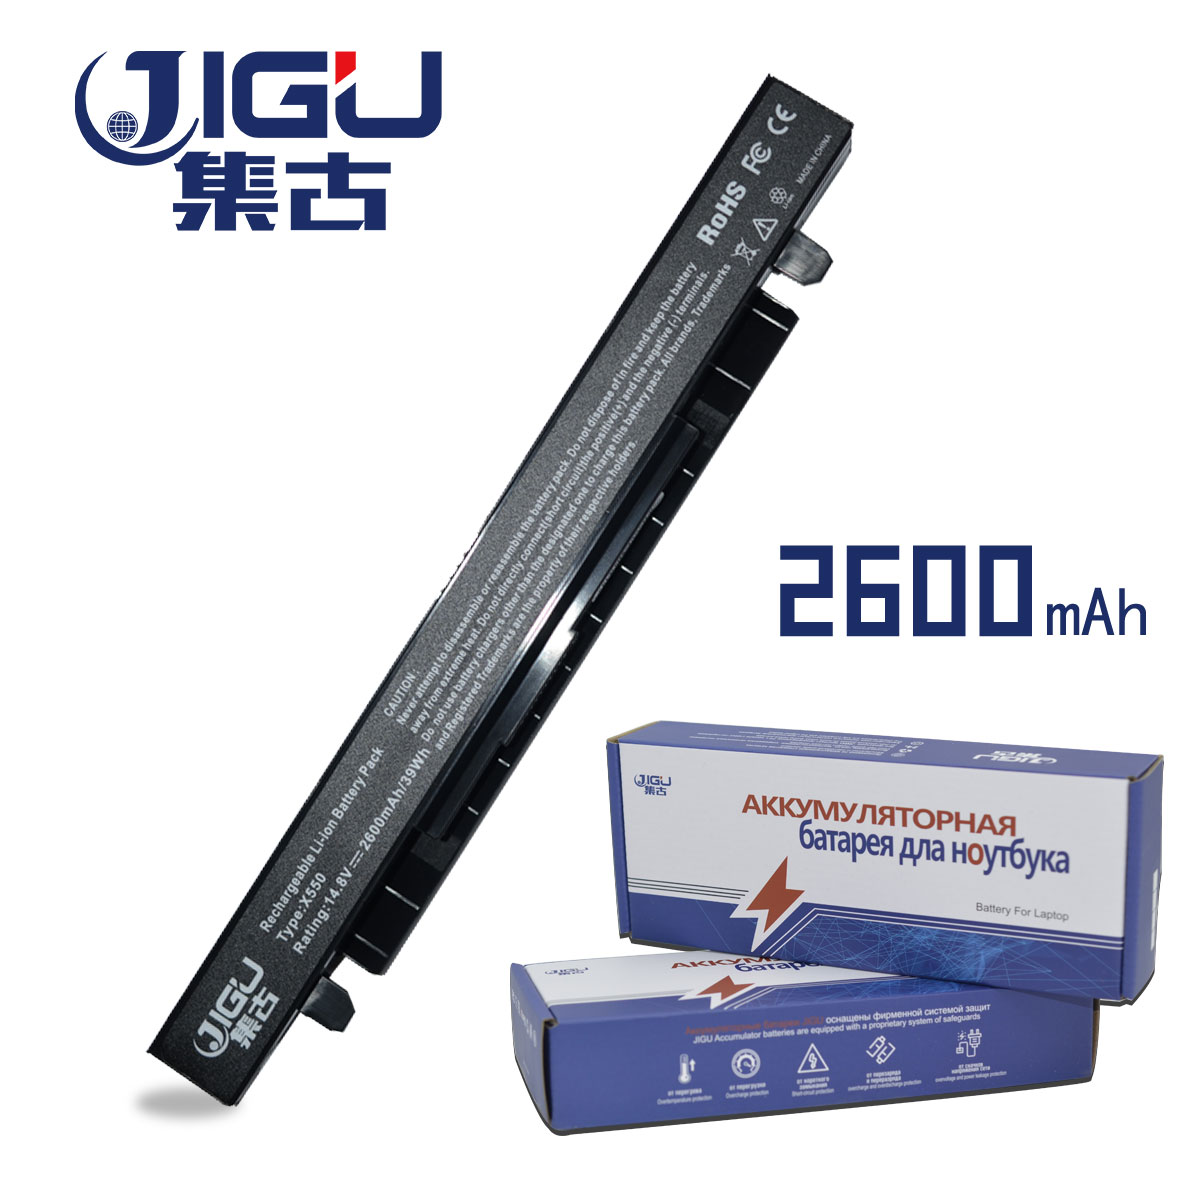 JIGU 4Cell Laptop Battery For Asus X452C X452E X550C X550CL X450VC X450E R510E F552E F550E A450CA A450VE X450LA X450VC